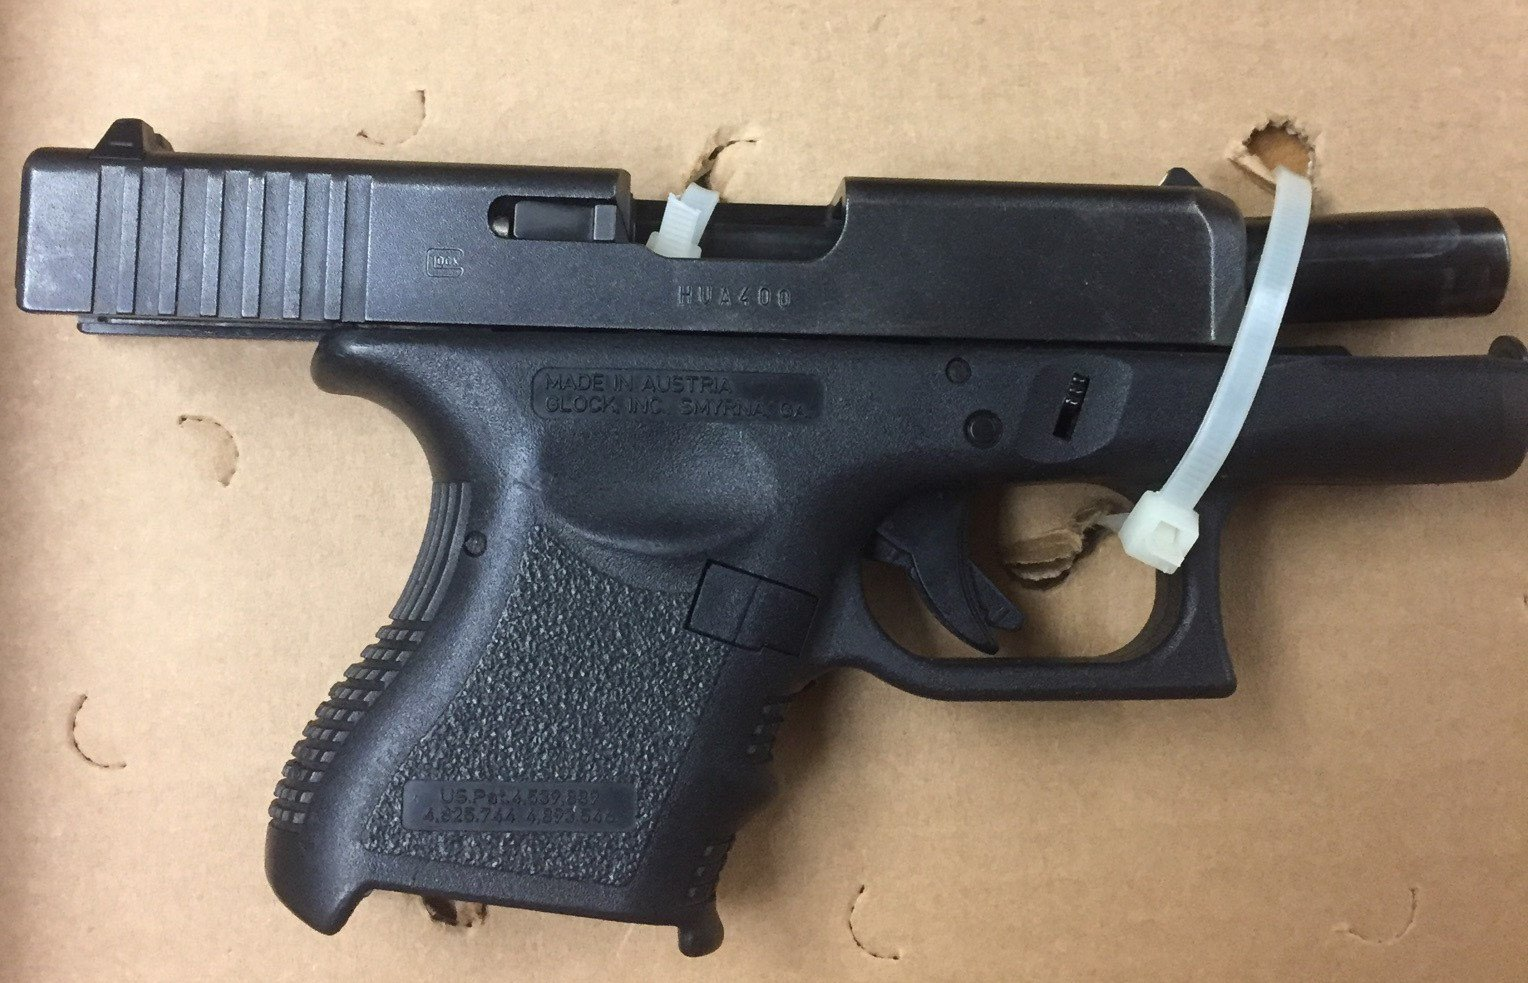 Glock that was seized at the crime scene